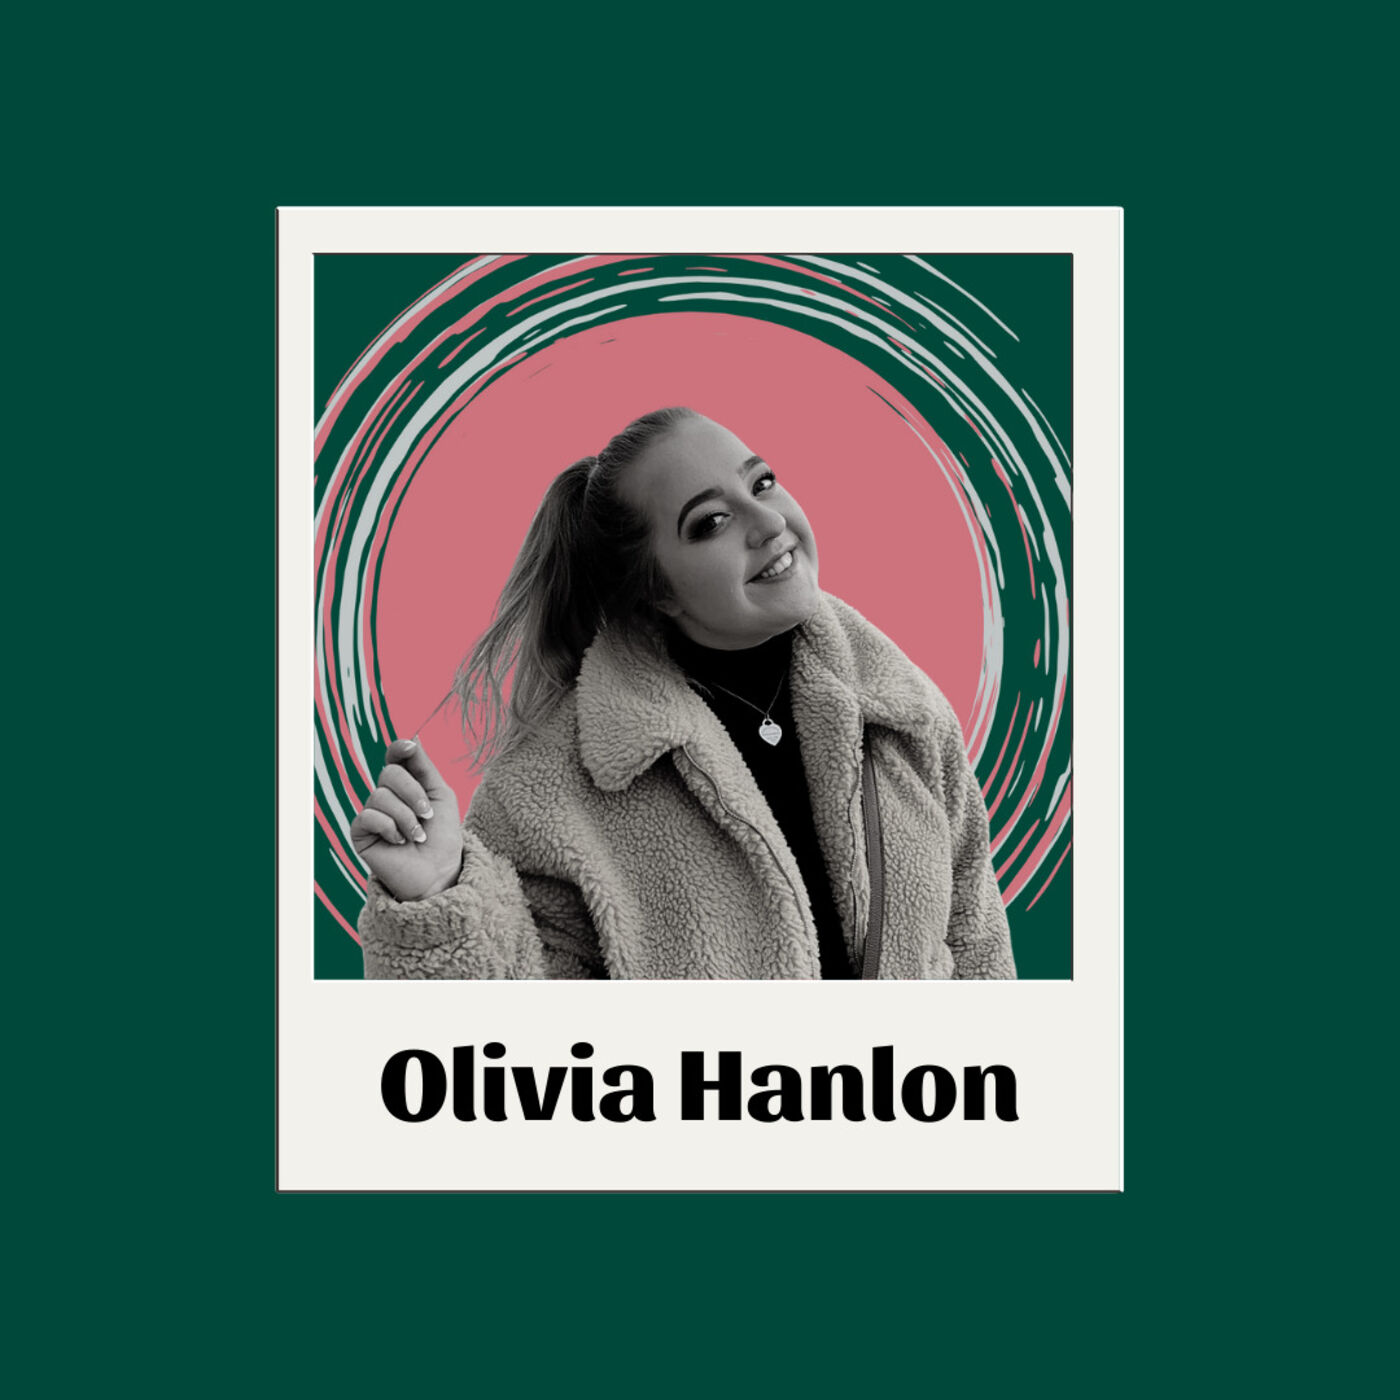 EP17 Olivia Hanlon- Taking risks, making big decisions and facing loneliness